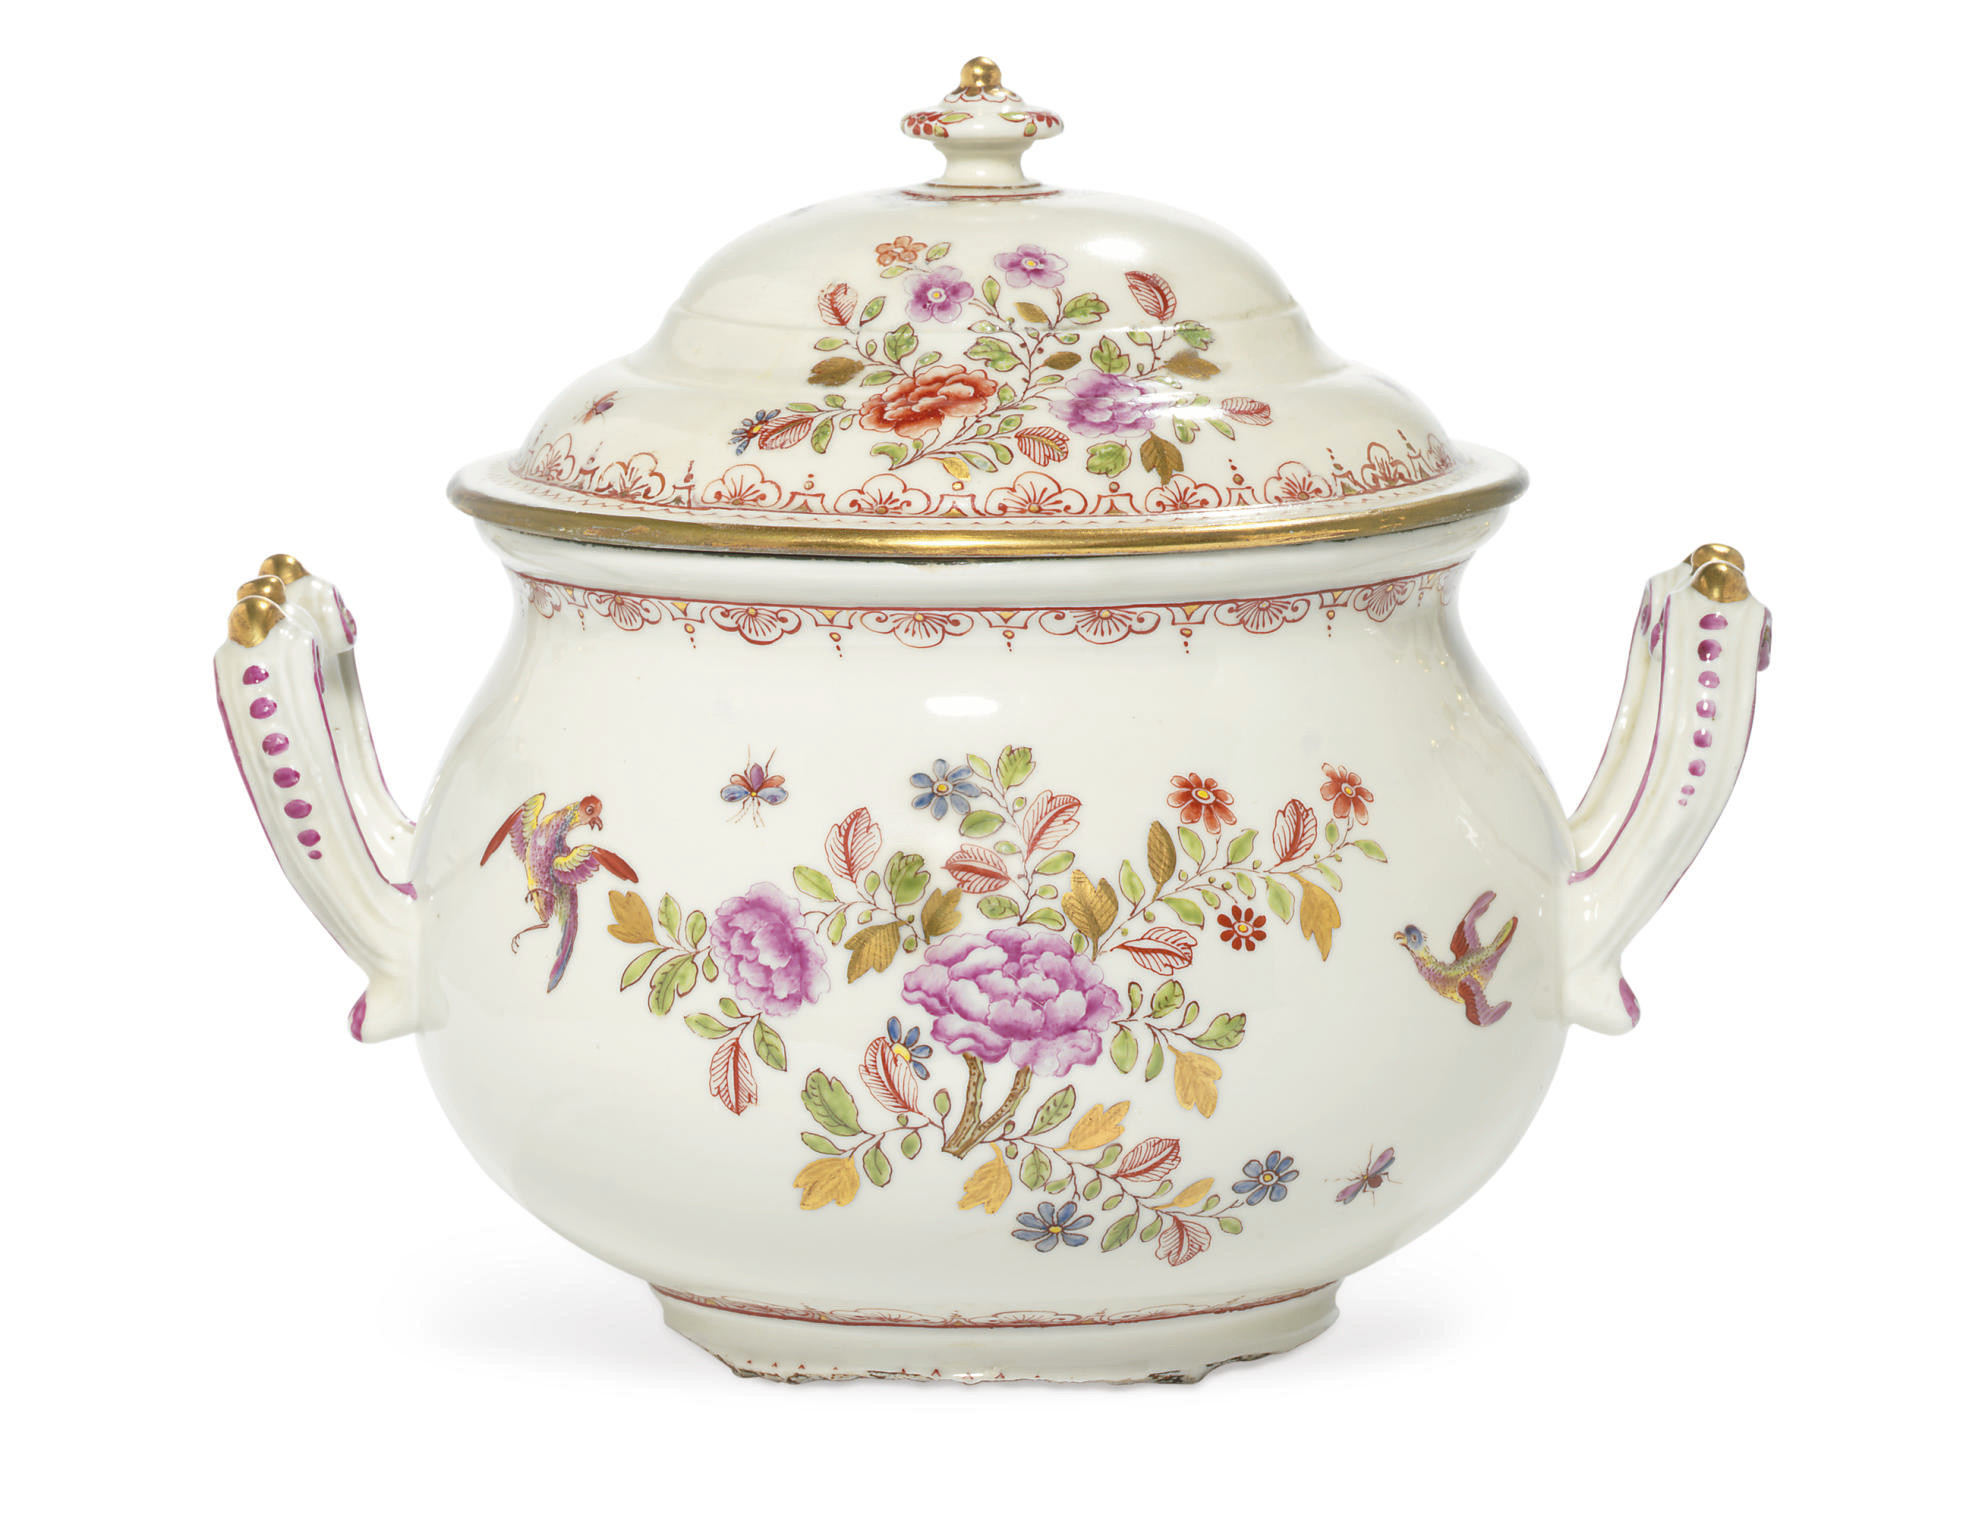 A VIENNA (DU PAQUIER) POT AND